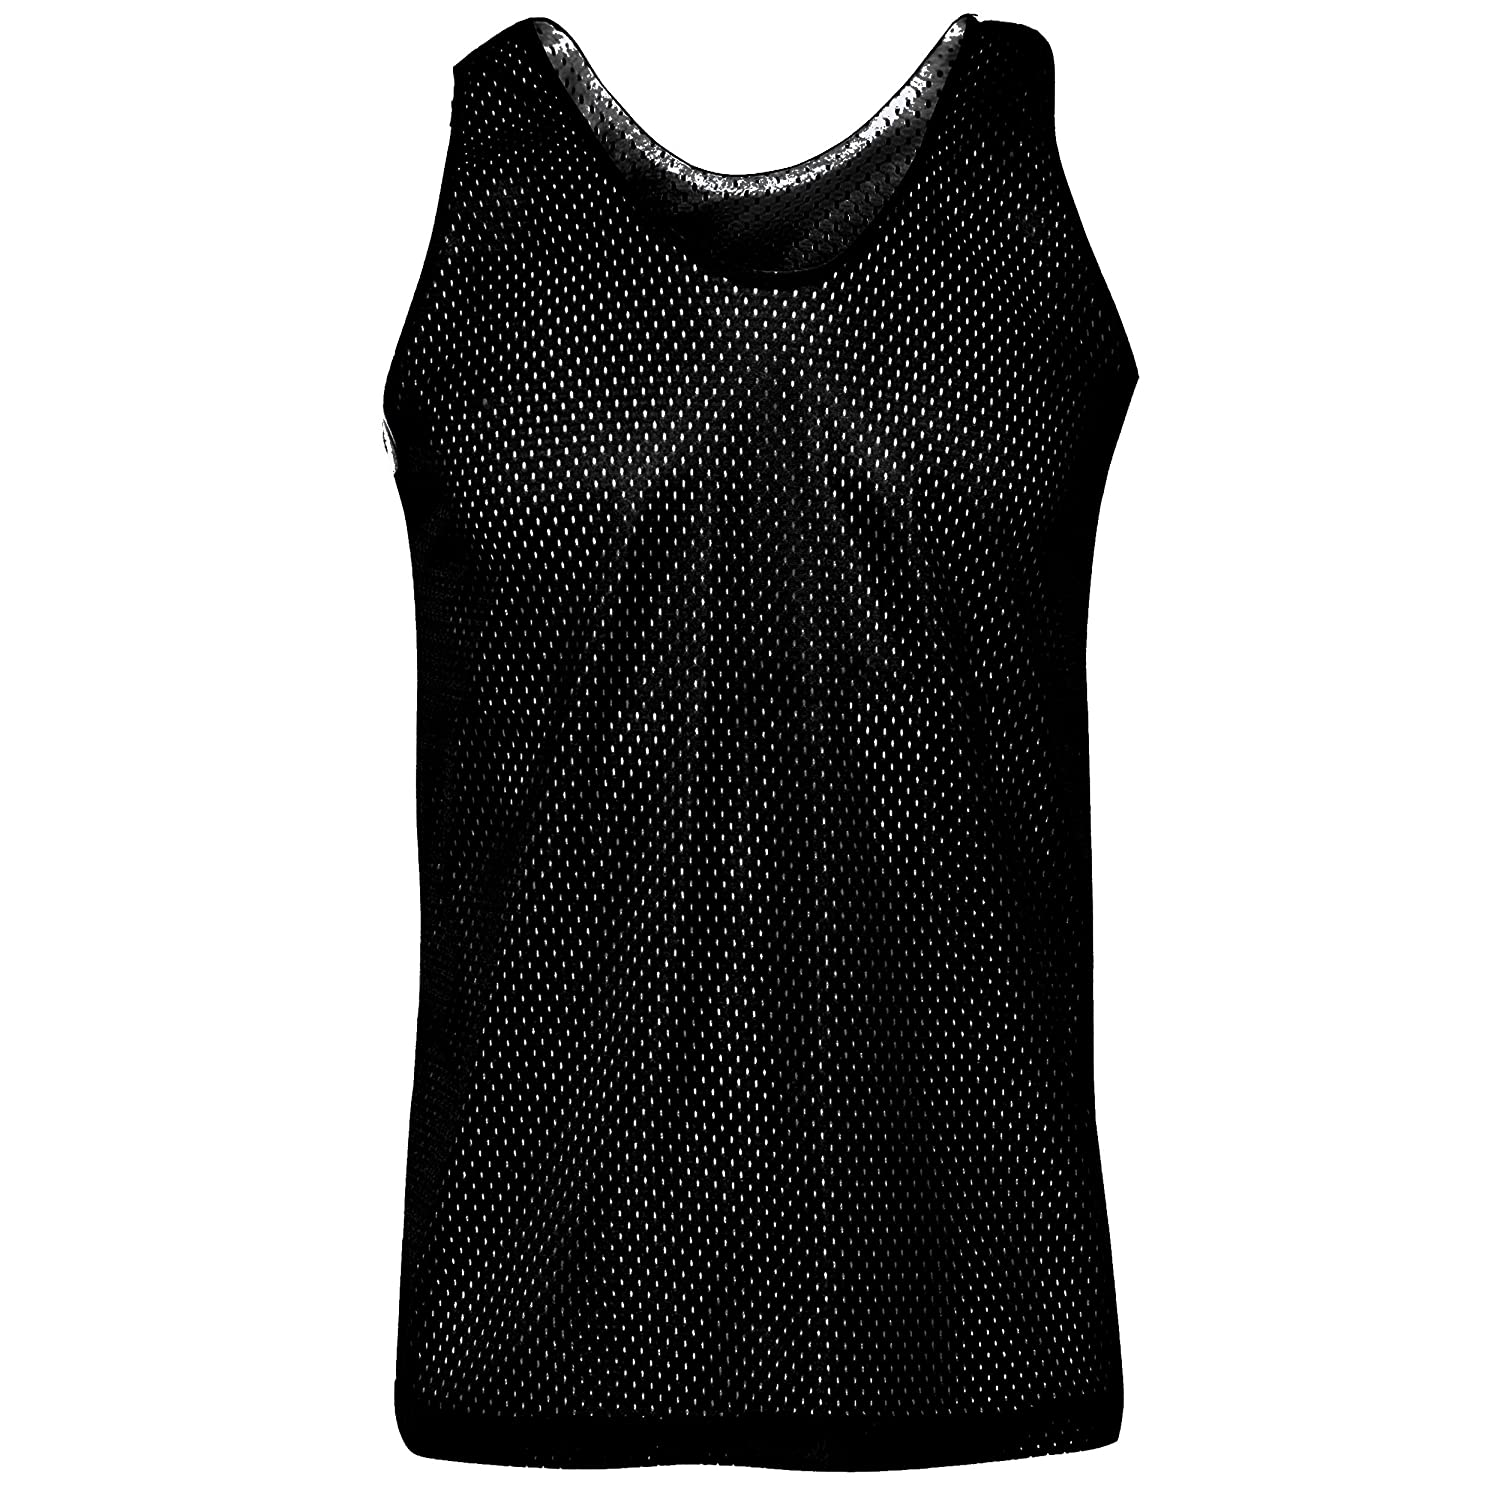 09cb1cacfed8f Men s Basic Sleeveless Tank Top   Muscle Shirt - available in various sizes  and colors